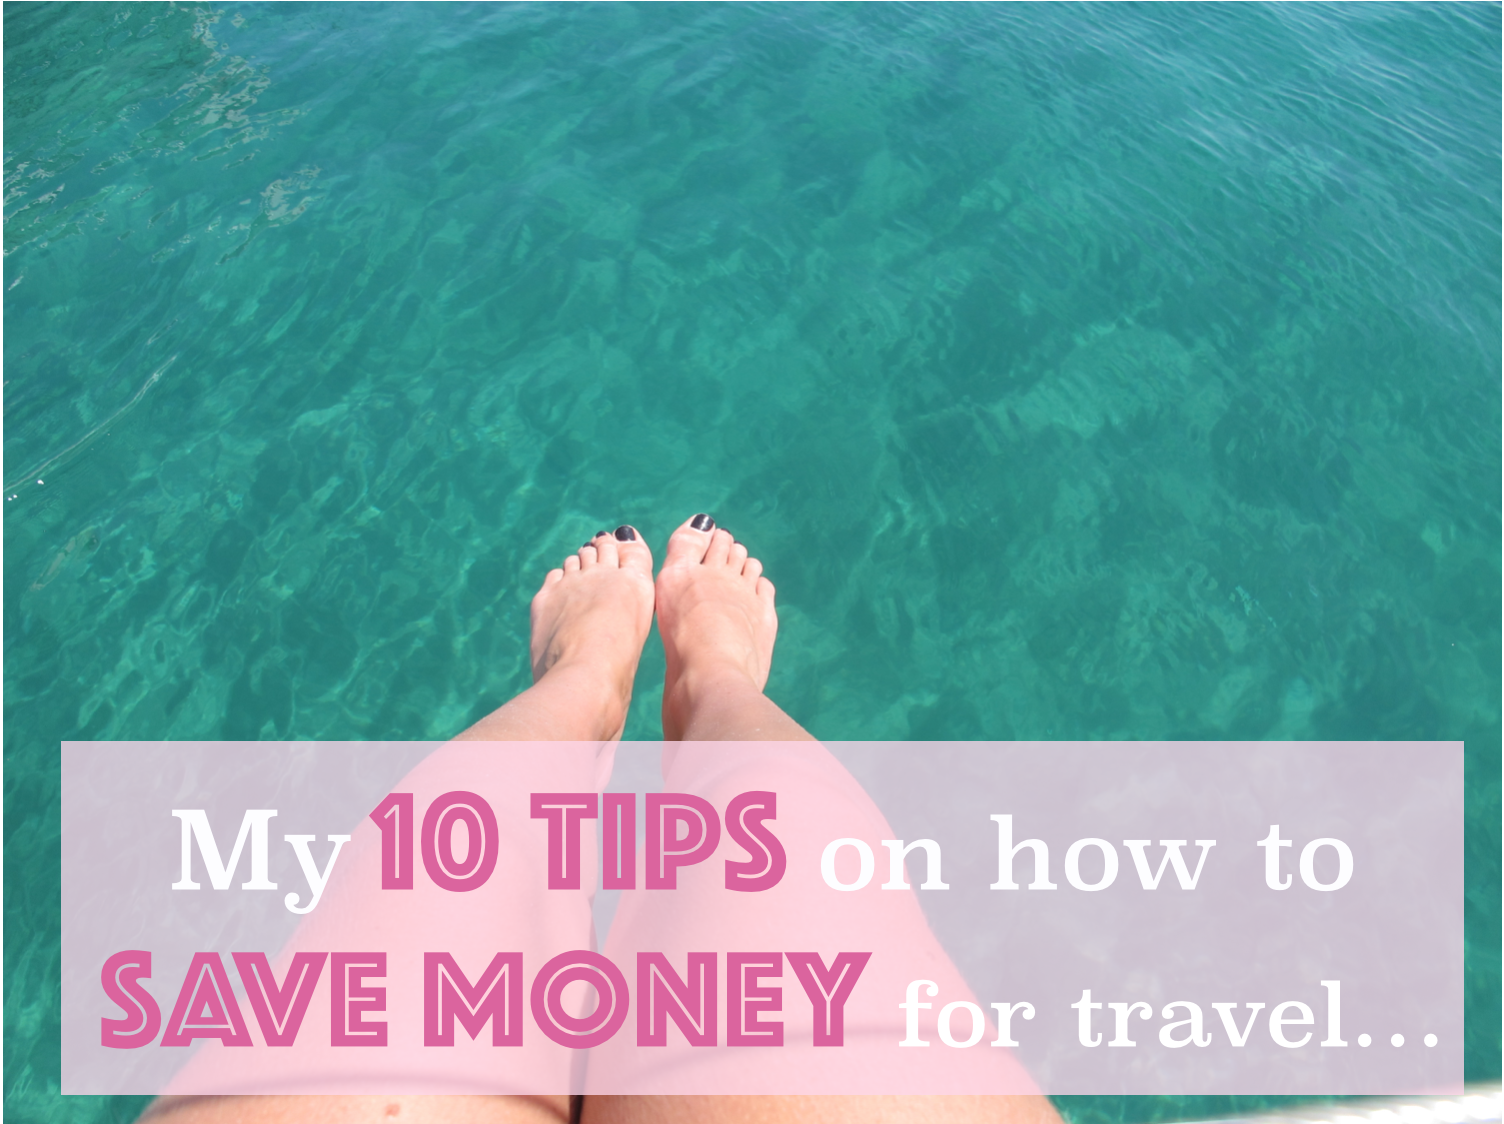 Top 10 Tips on How To Save Money For Travel